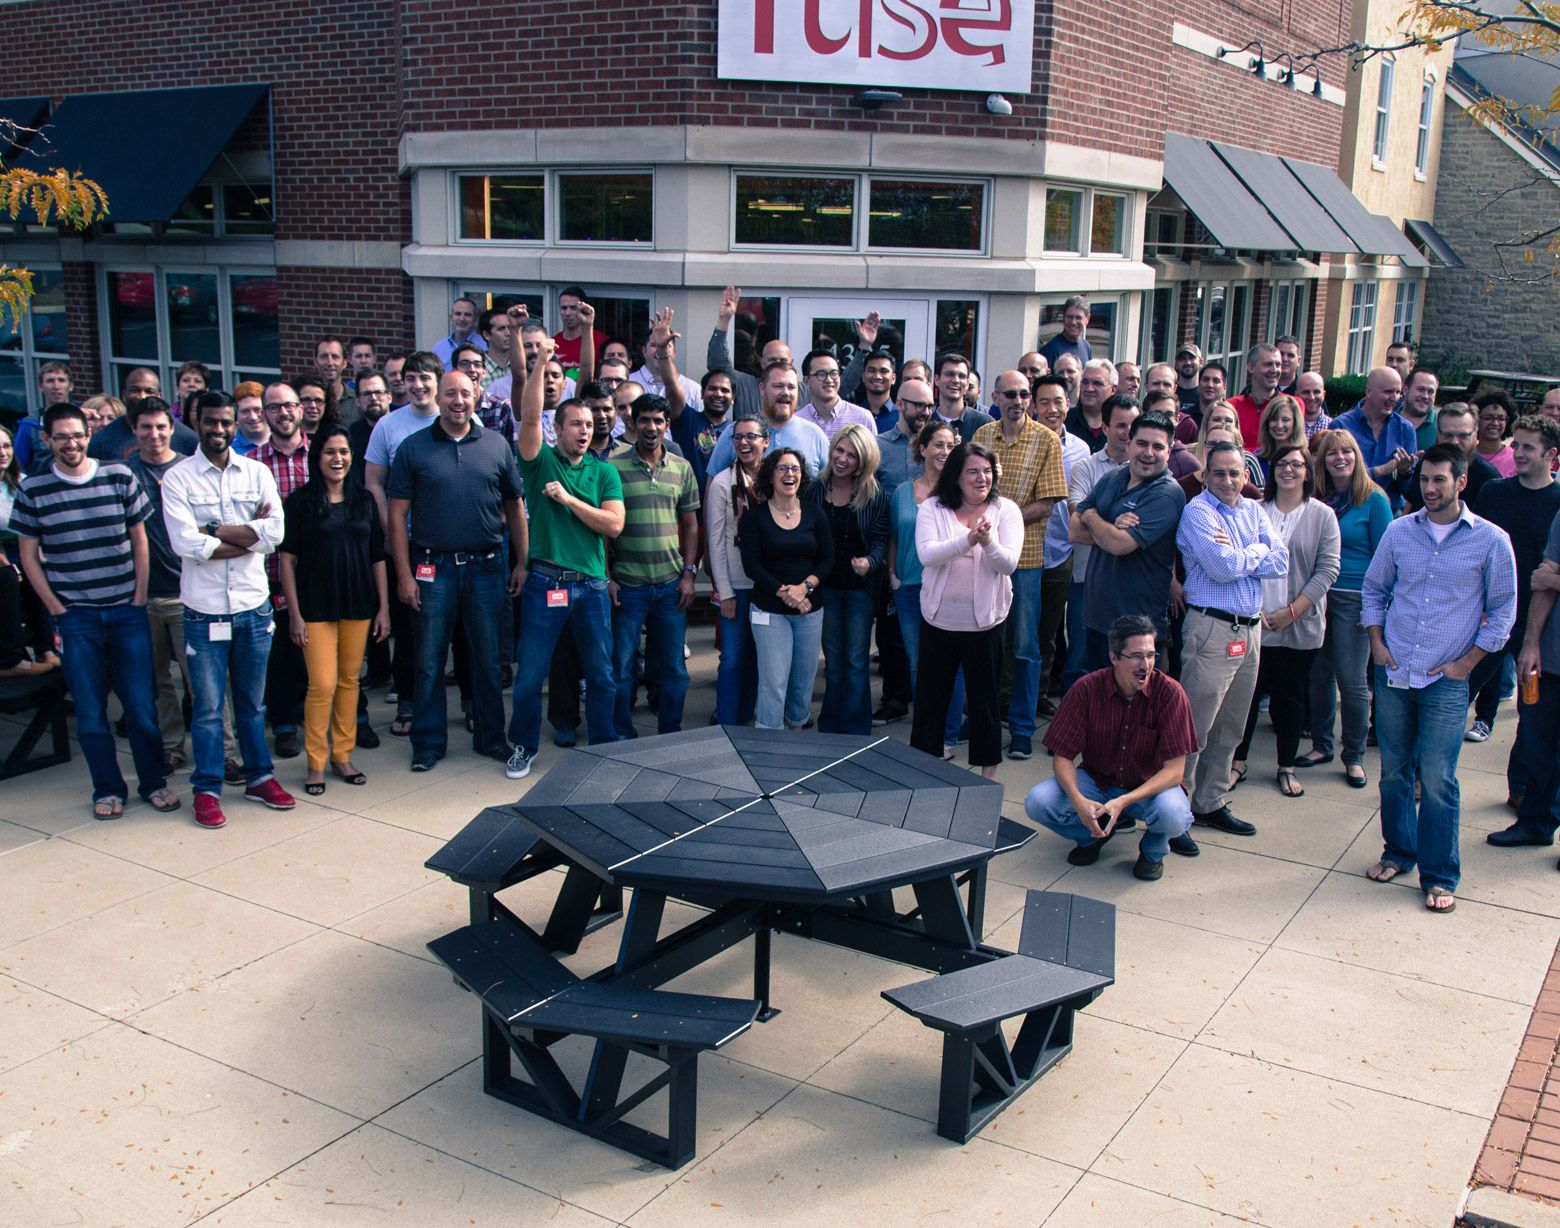 large group of associates outside Fuse building